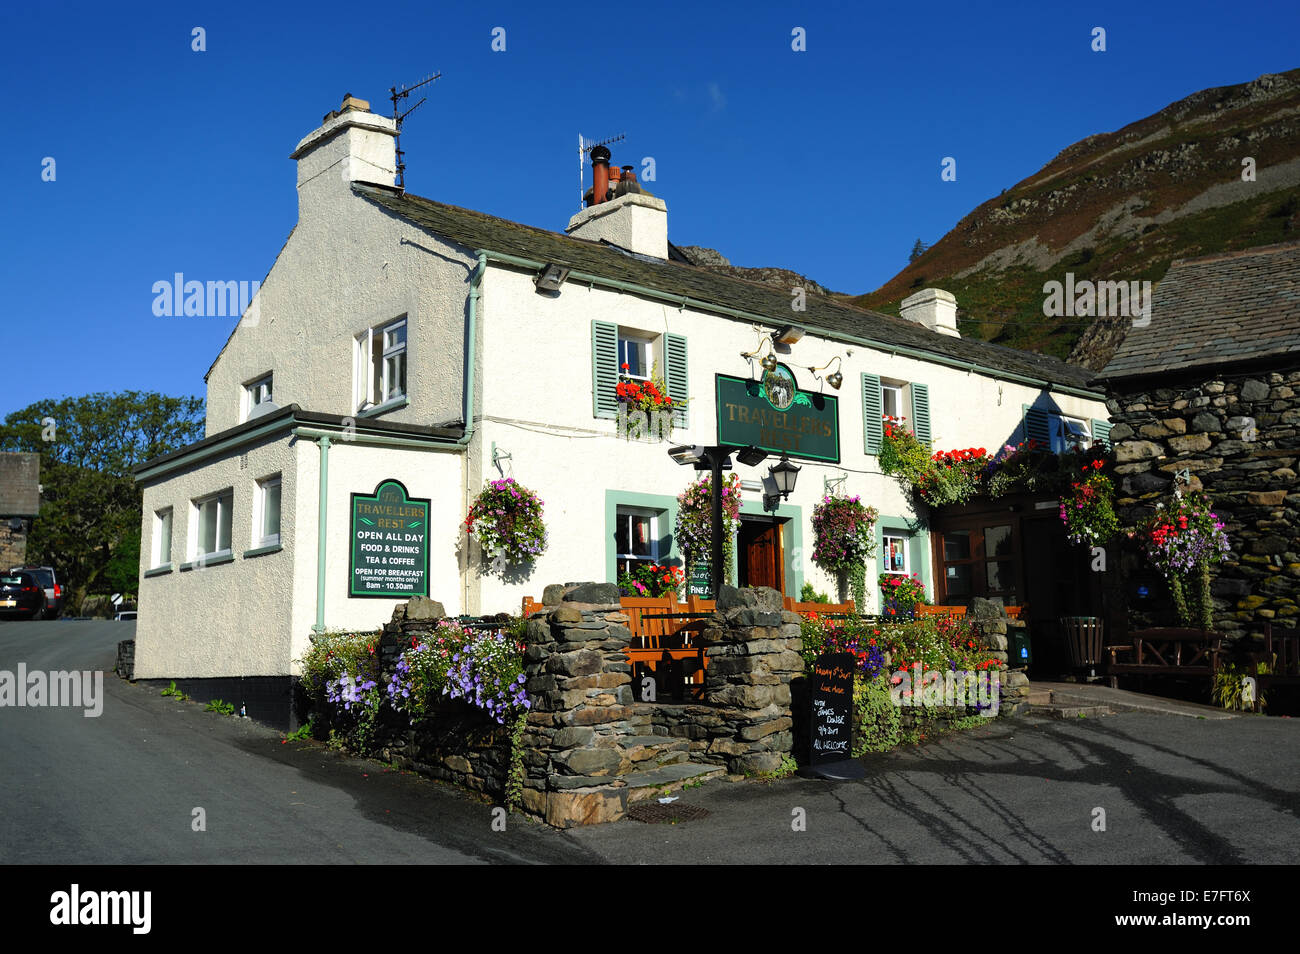 Travellers Rest Public House - Stock Image